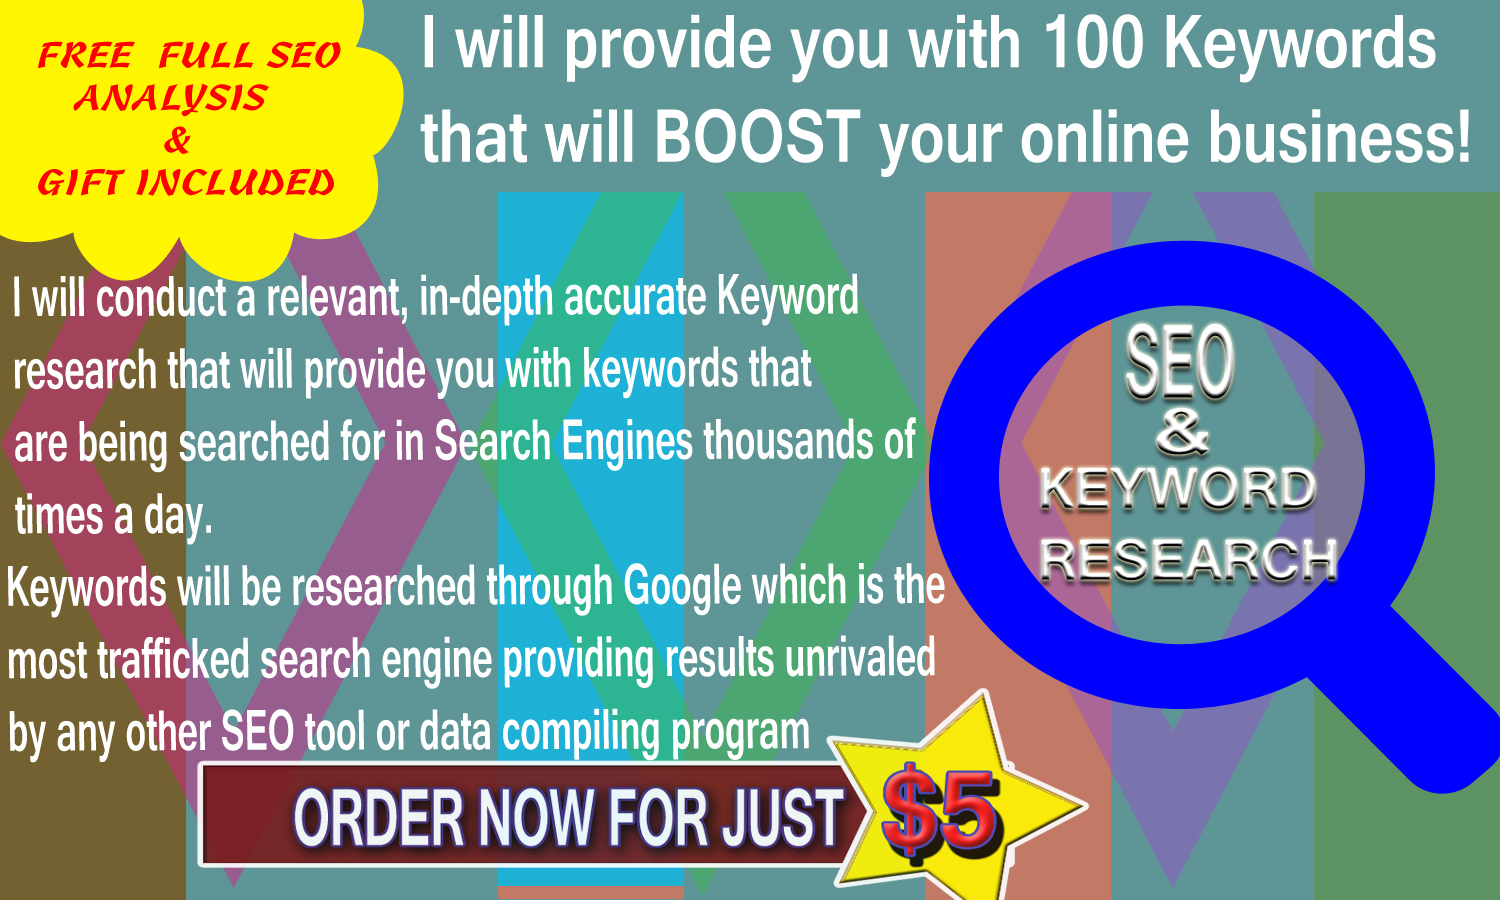 Provide You With 100 Keywords That Will Boost Your Website Traffic